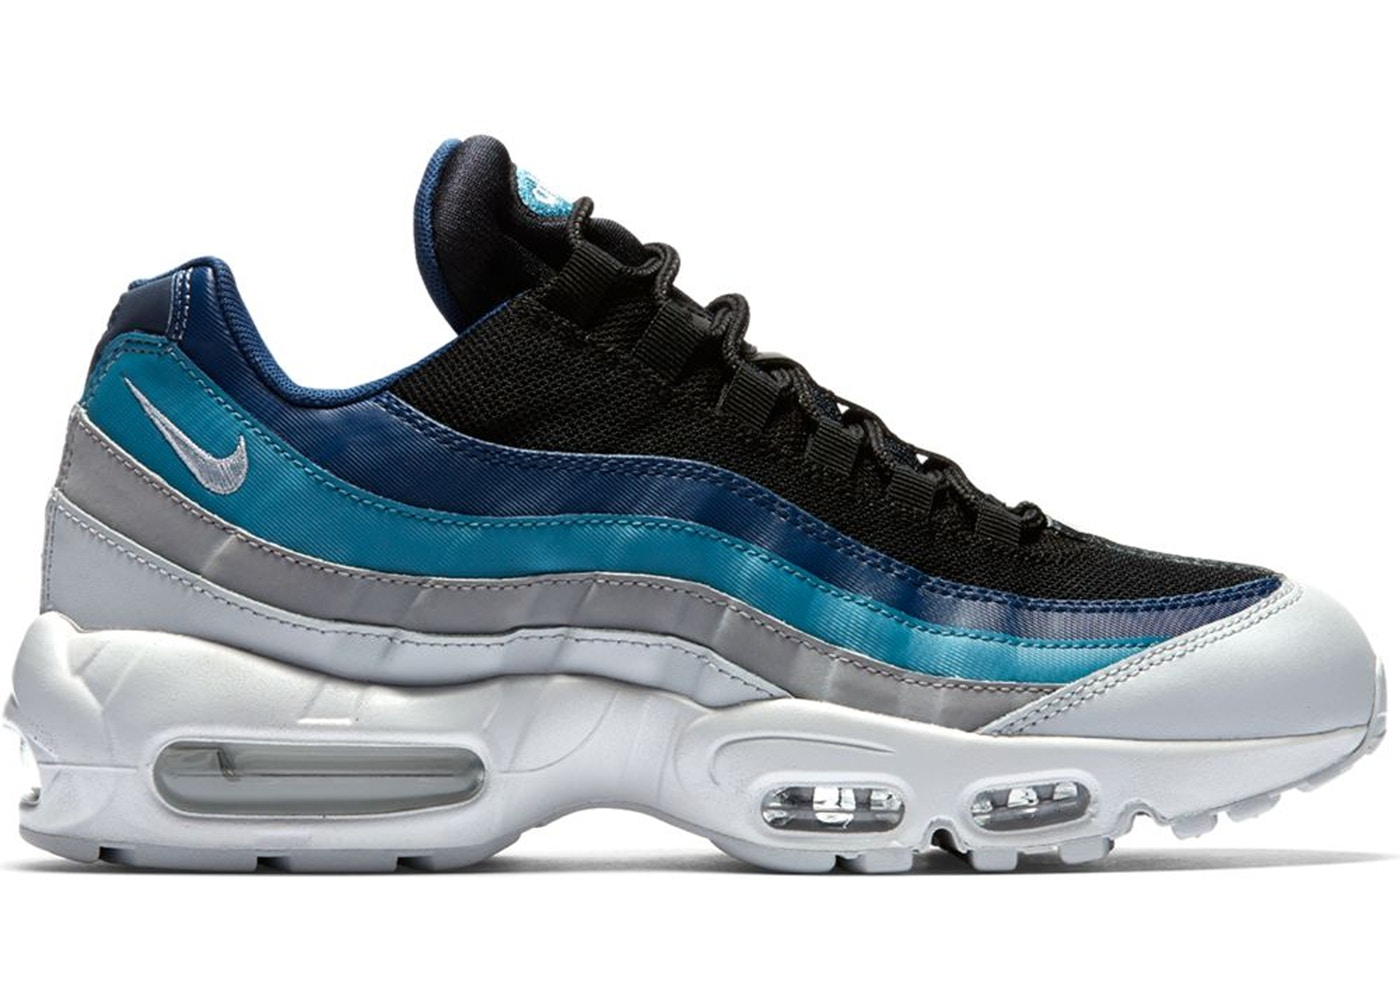 e1b1a4c9914 Air Max 95 Reverse Stash - 749766-026